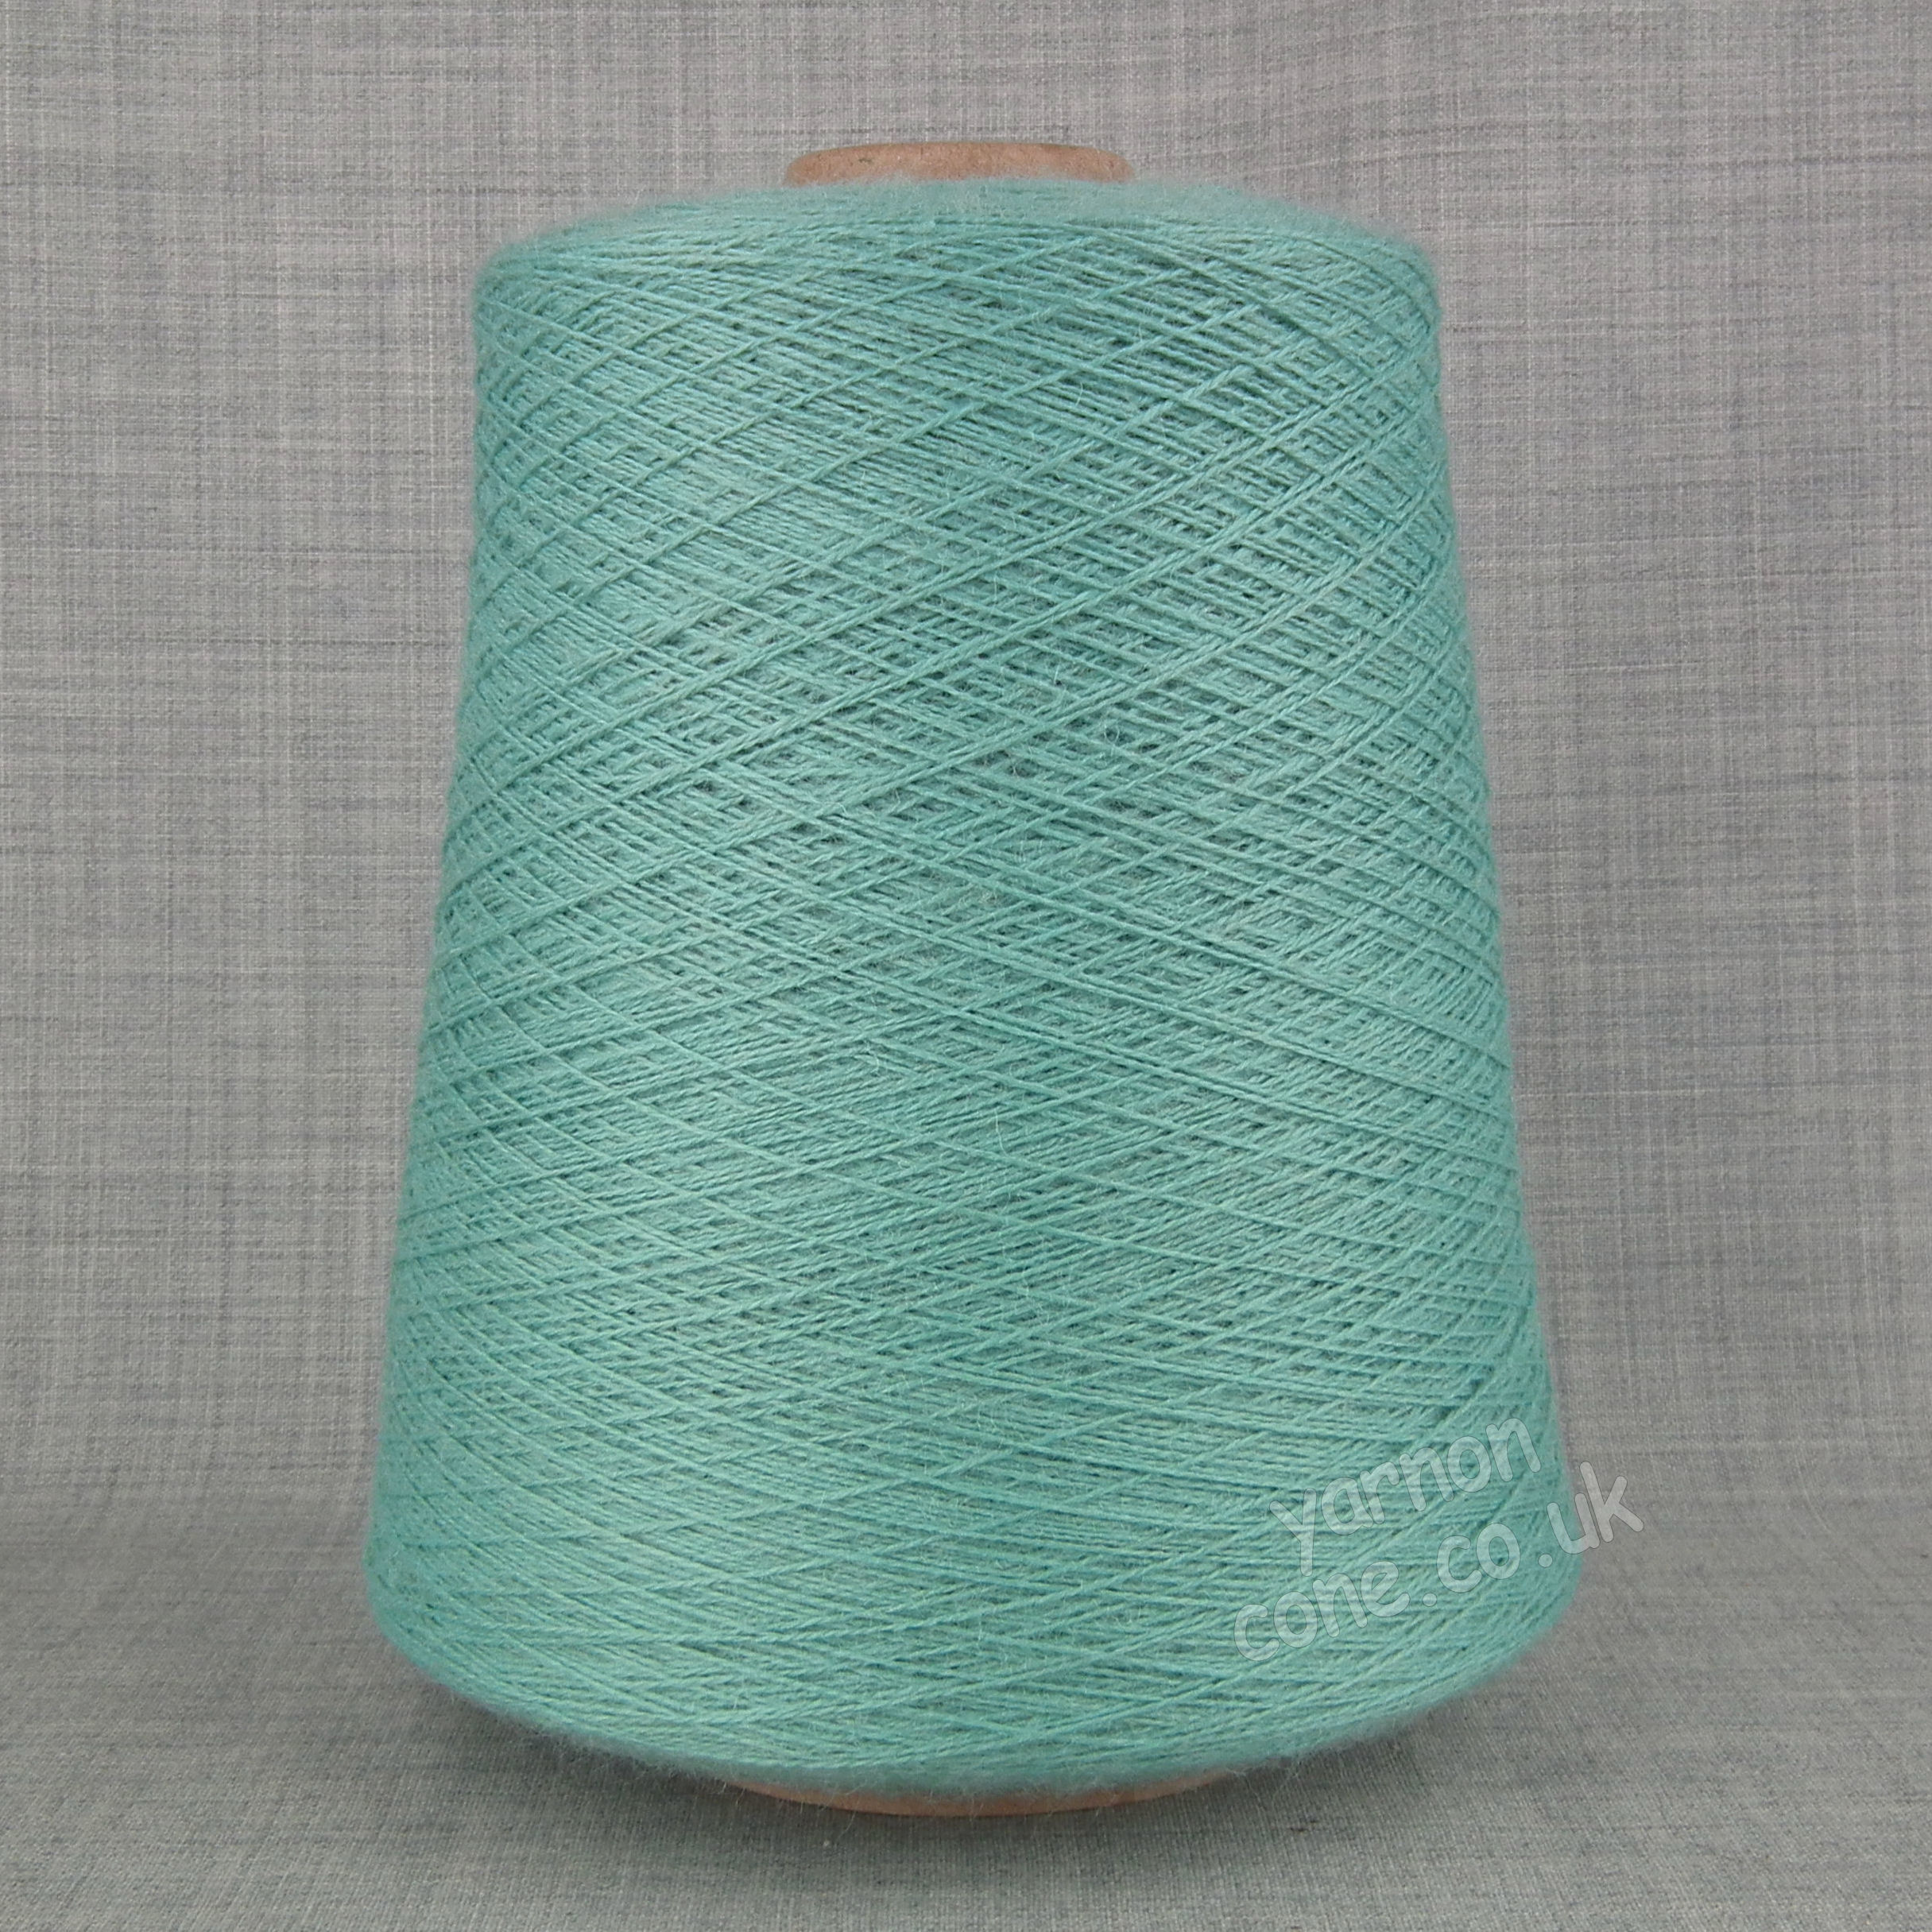 pure wool with weaving twist for weaving loom heddle high twist weaving wefting warping yarn weft and warp